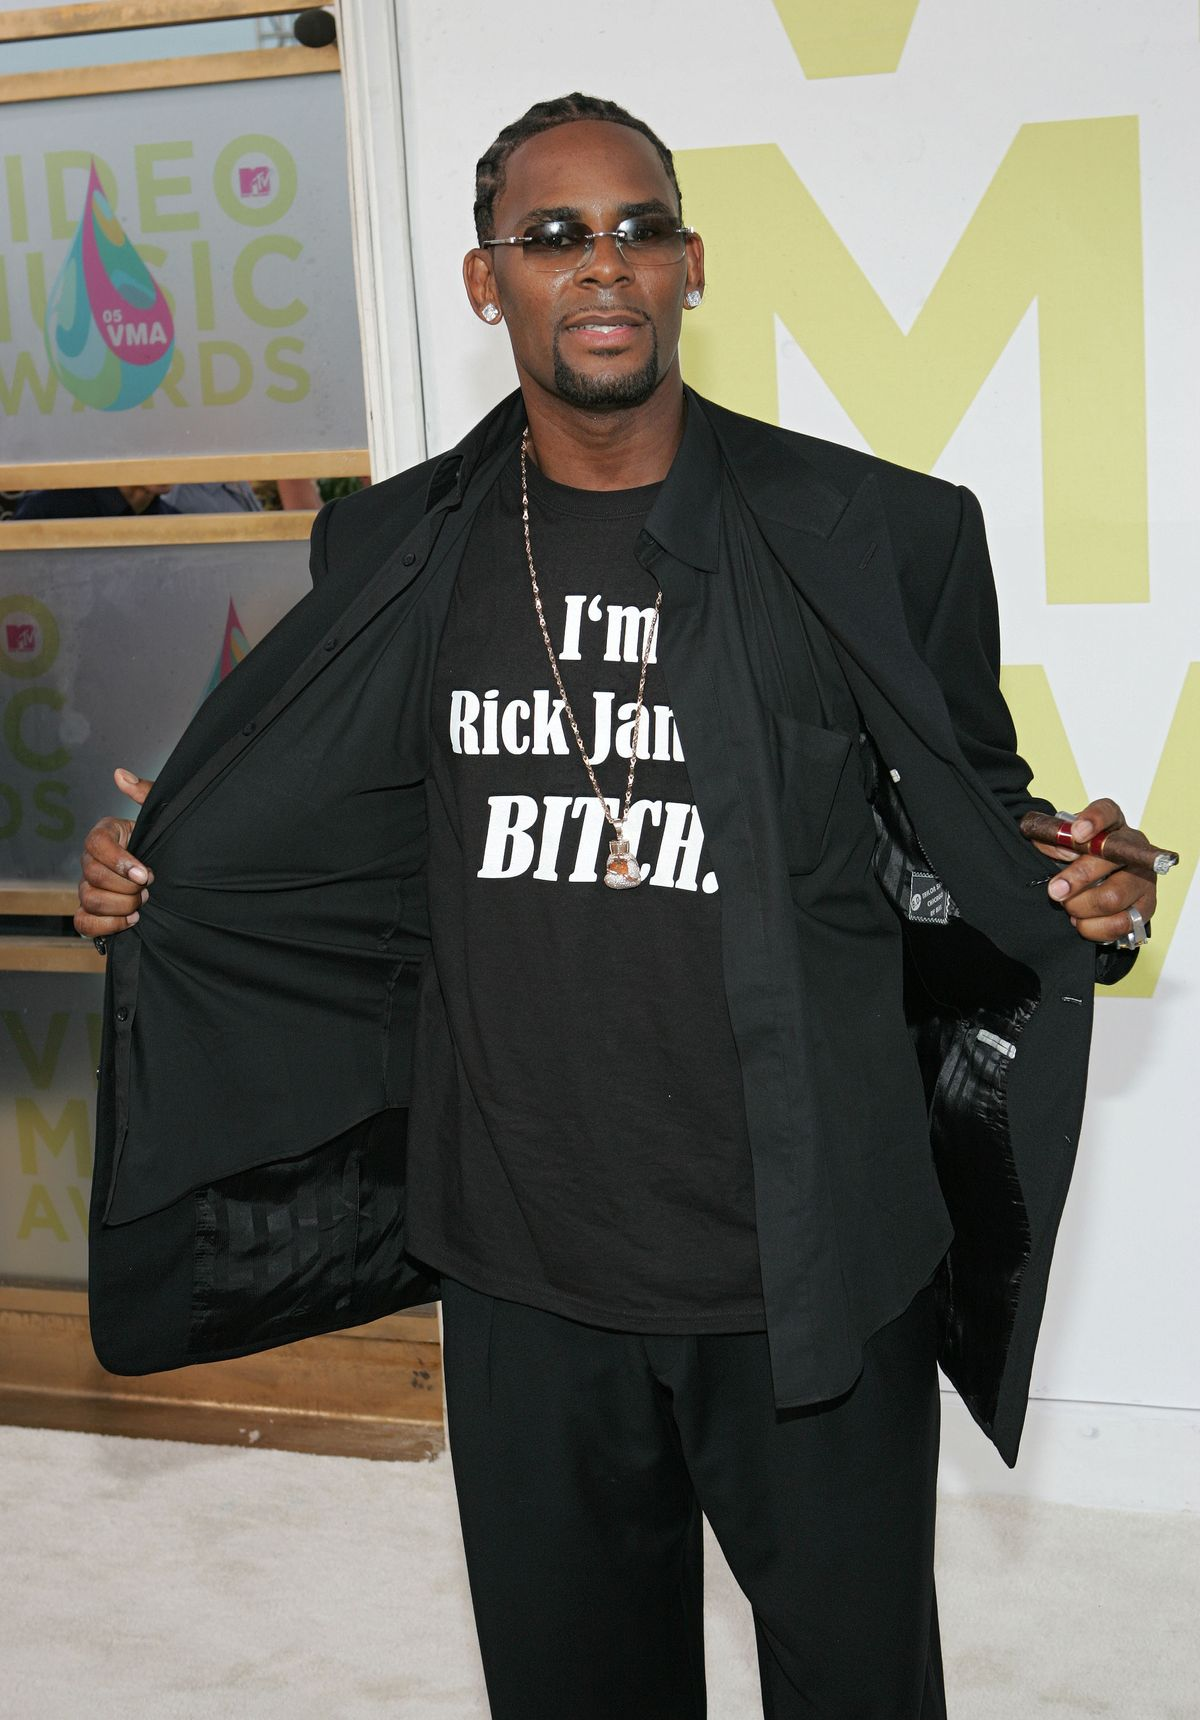 MIAMI - AUGUST 28: Singer R. Kelly arrives at the 2005 MTV Video Music Awards at the American Airlines Arena on August 28, 2005 in Miami, Florida. (Photo by Alexander Tamargo/Getty Images)